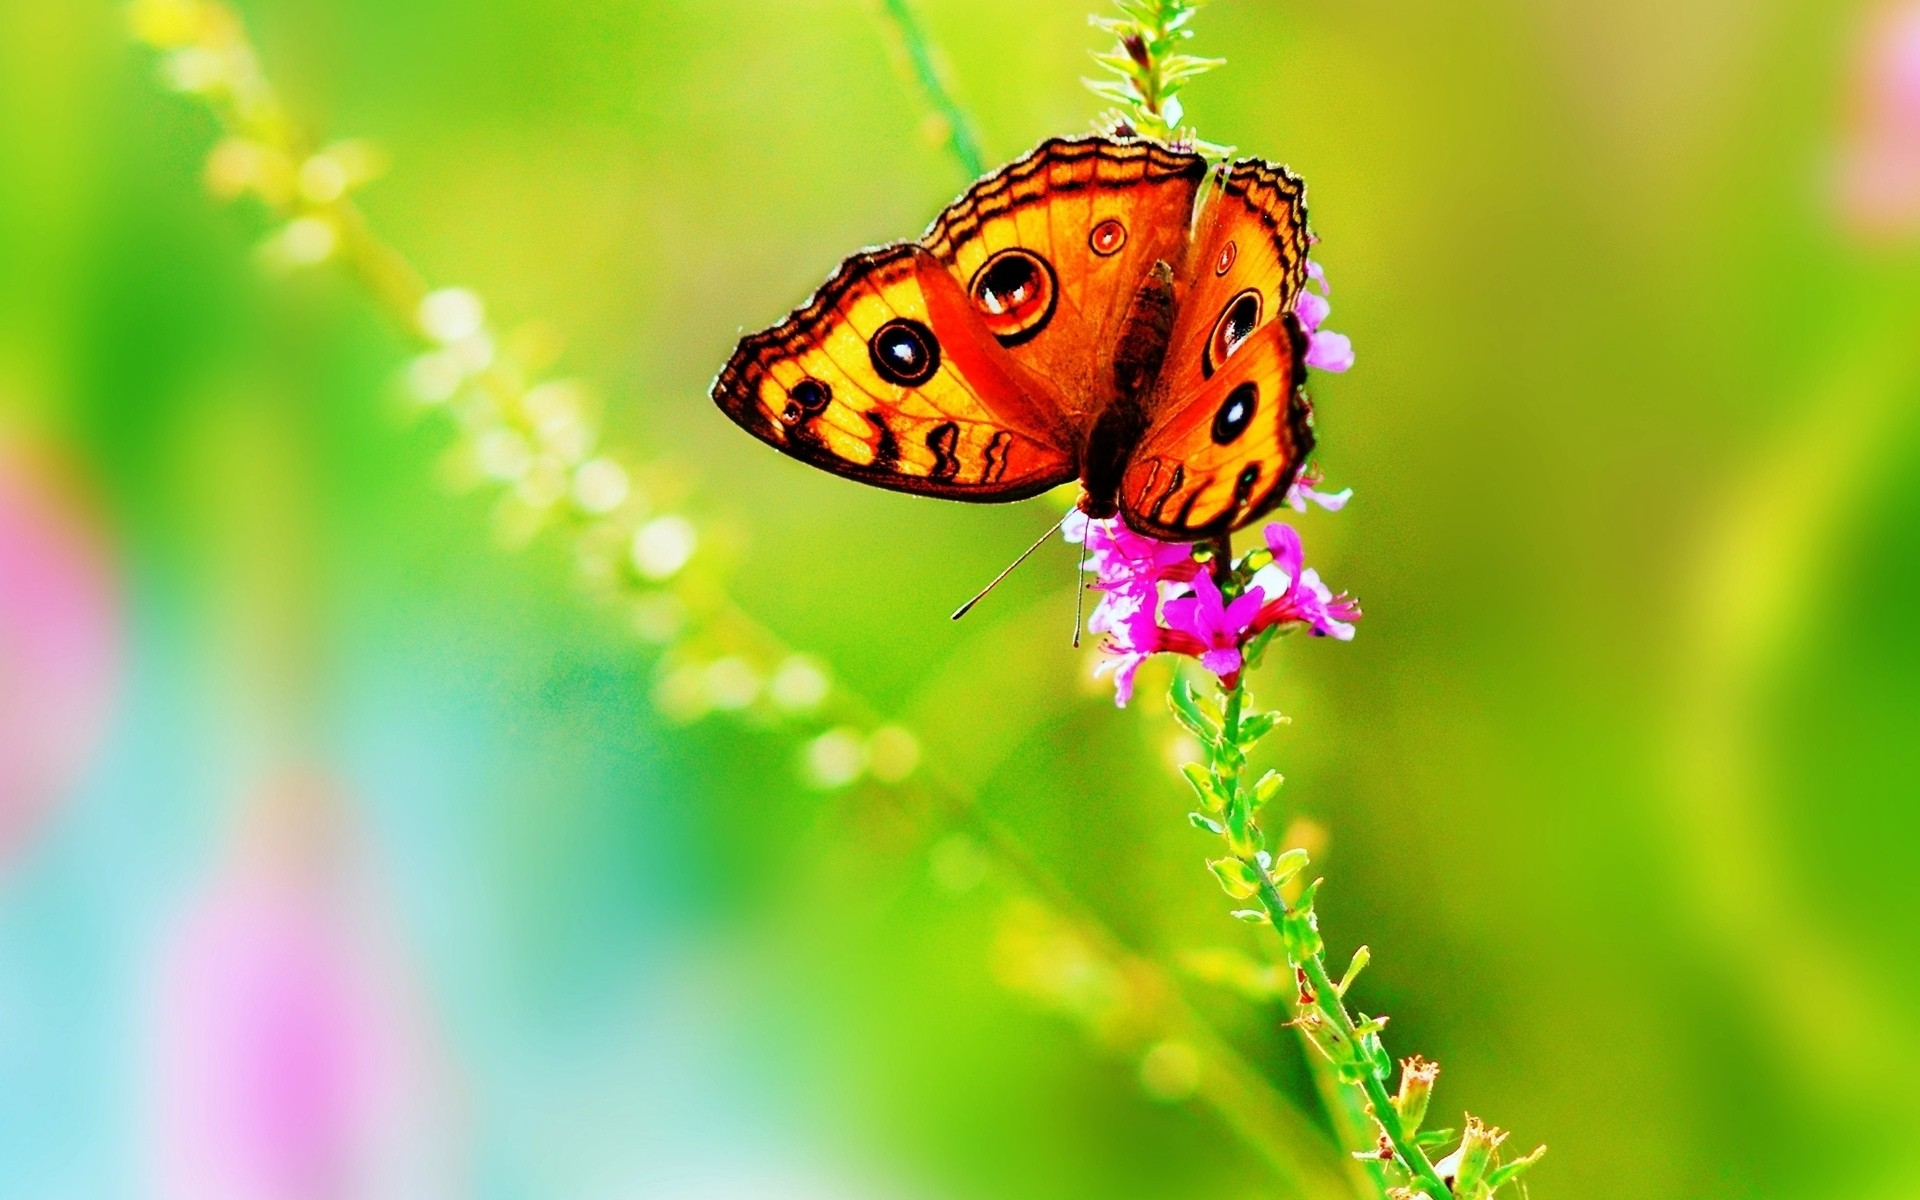 Bright Colorful Butterfly Wallpaper   Wallpaper 37385 1920x1200